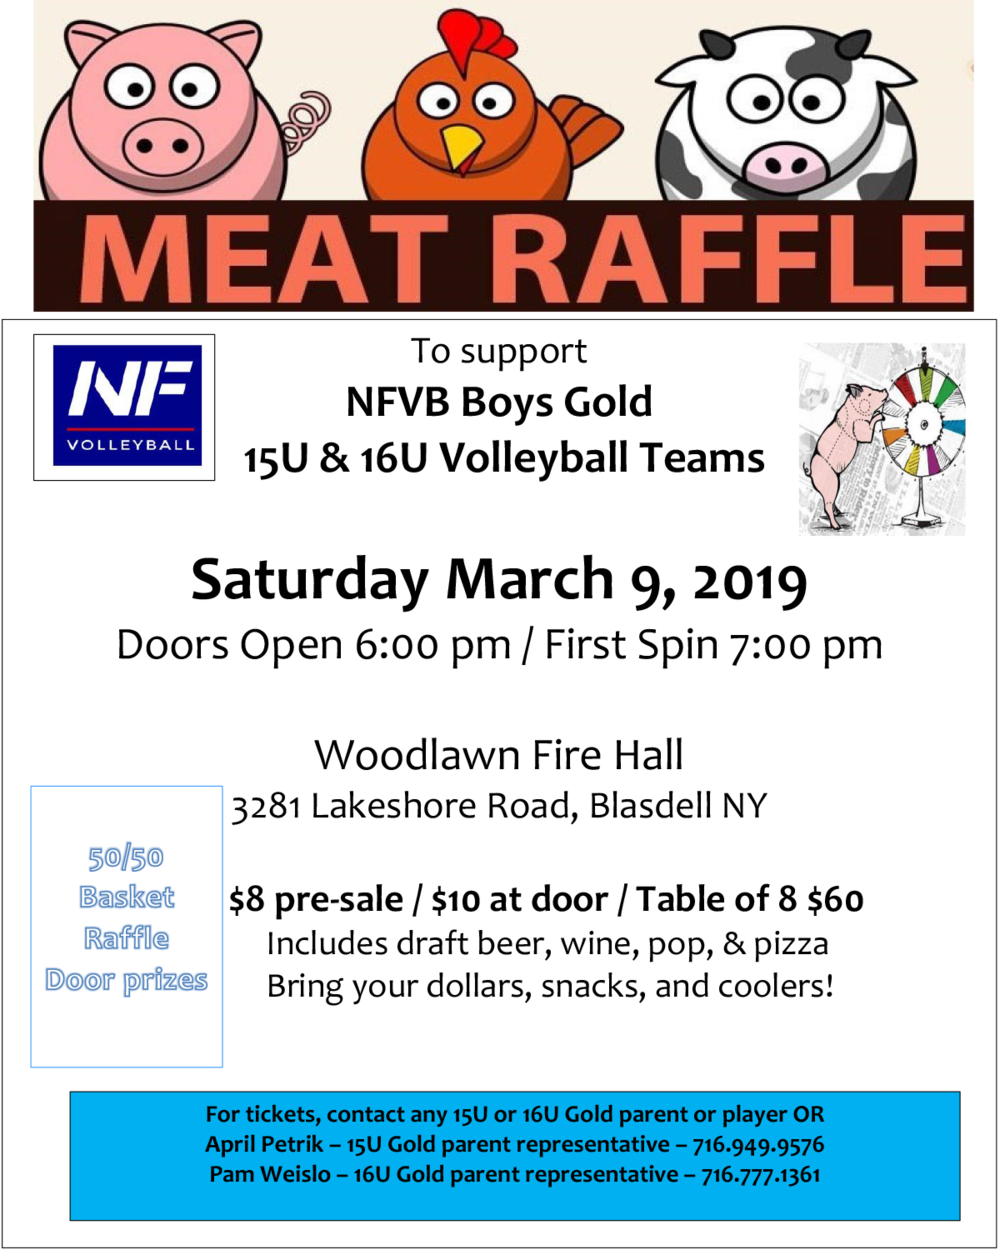 2019 Meat Raffle flyer.png